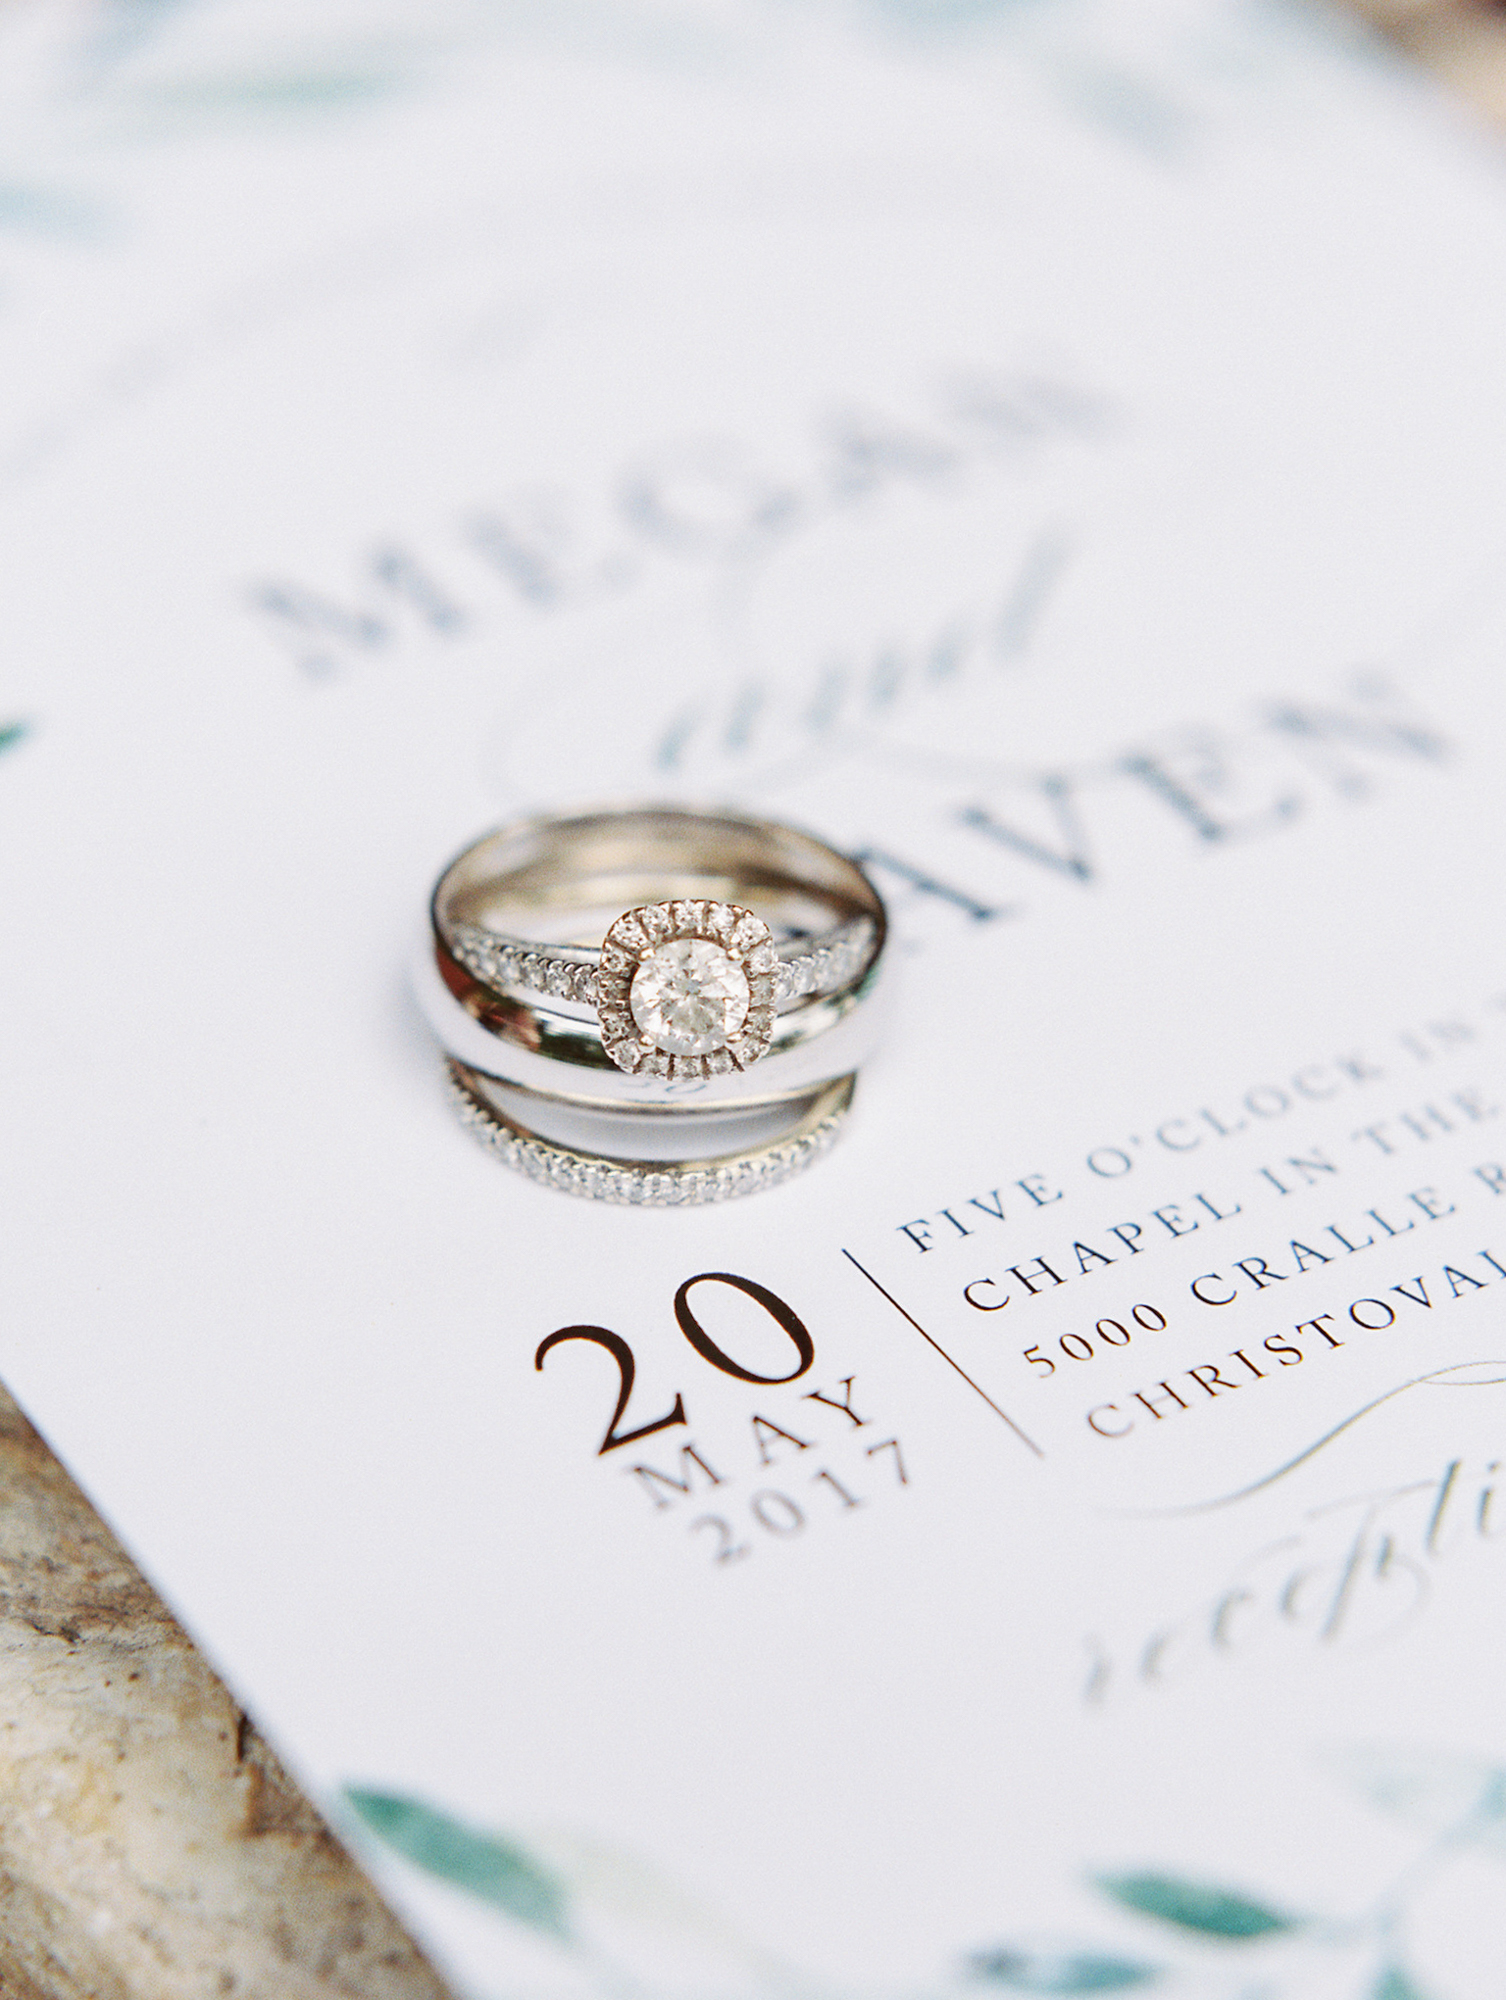 Elegant Spring Vineyard Wedding | Film Wedding Photographer | Austin Wedding Photographer | Stunning Round Engagement Ring | Britni Dean Photography // britnidean.com